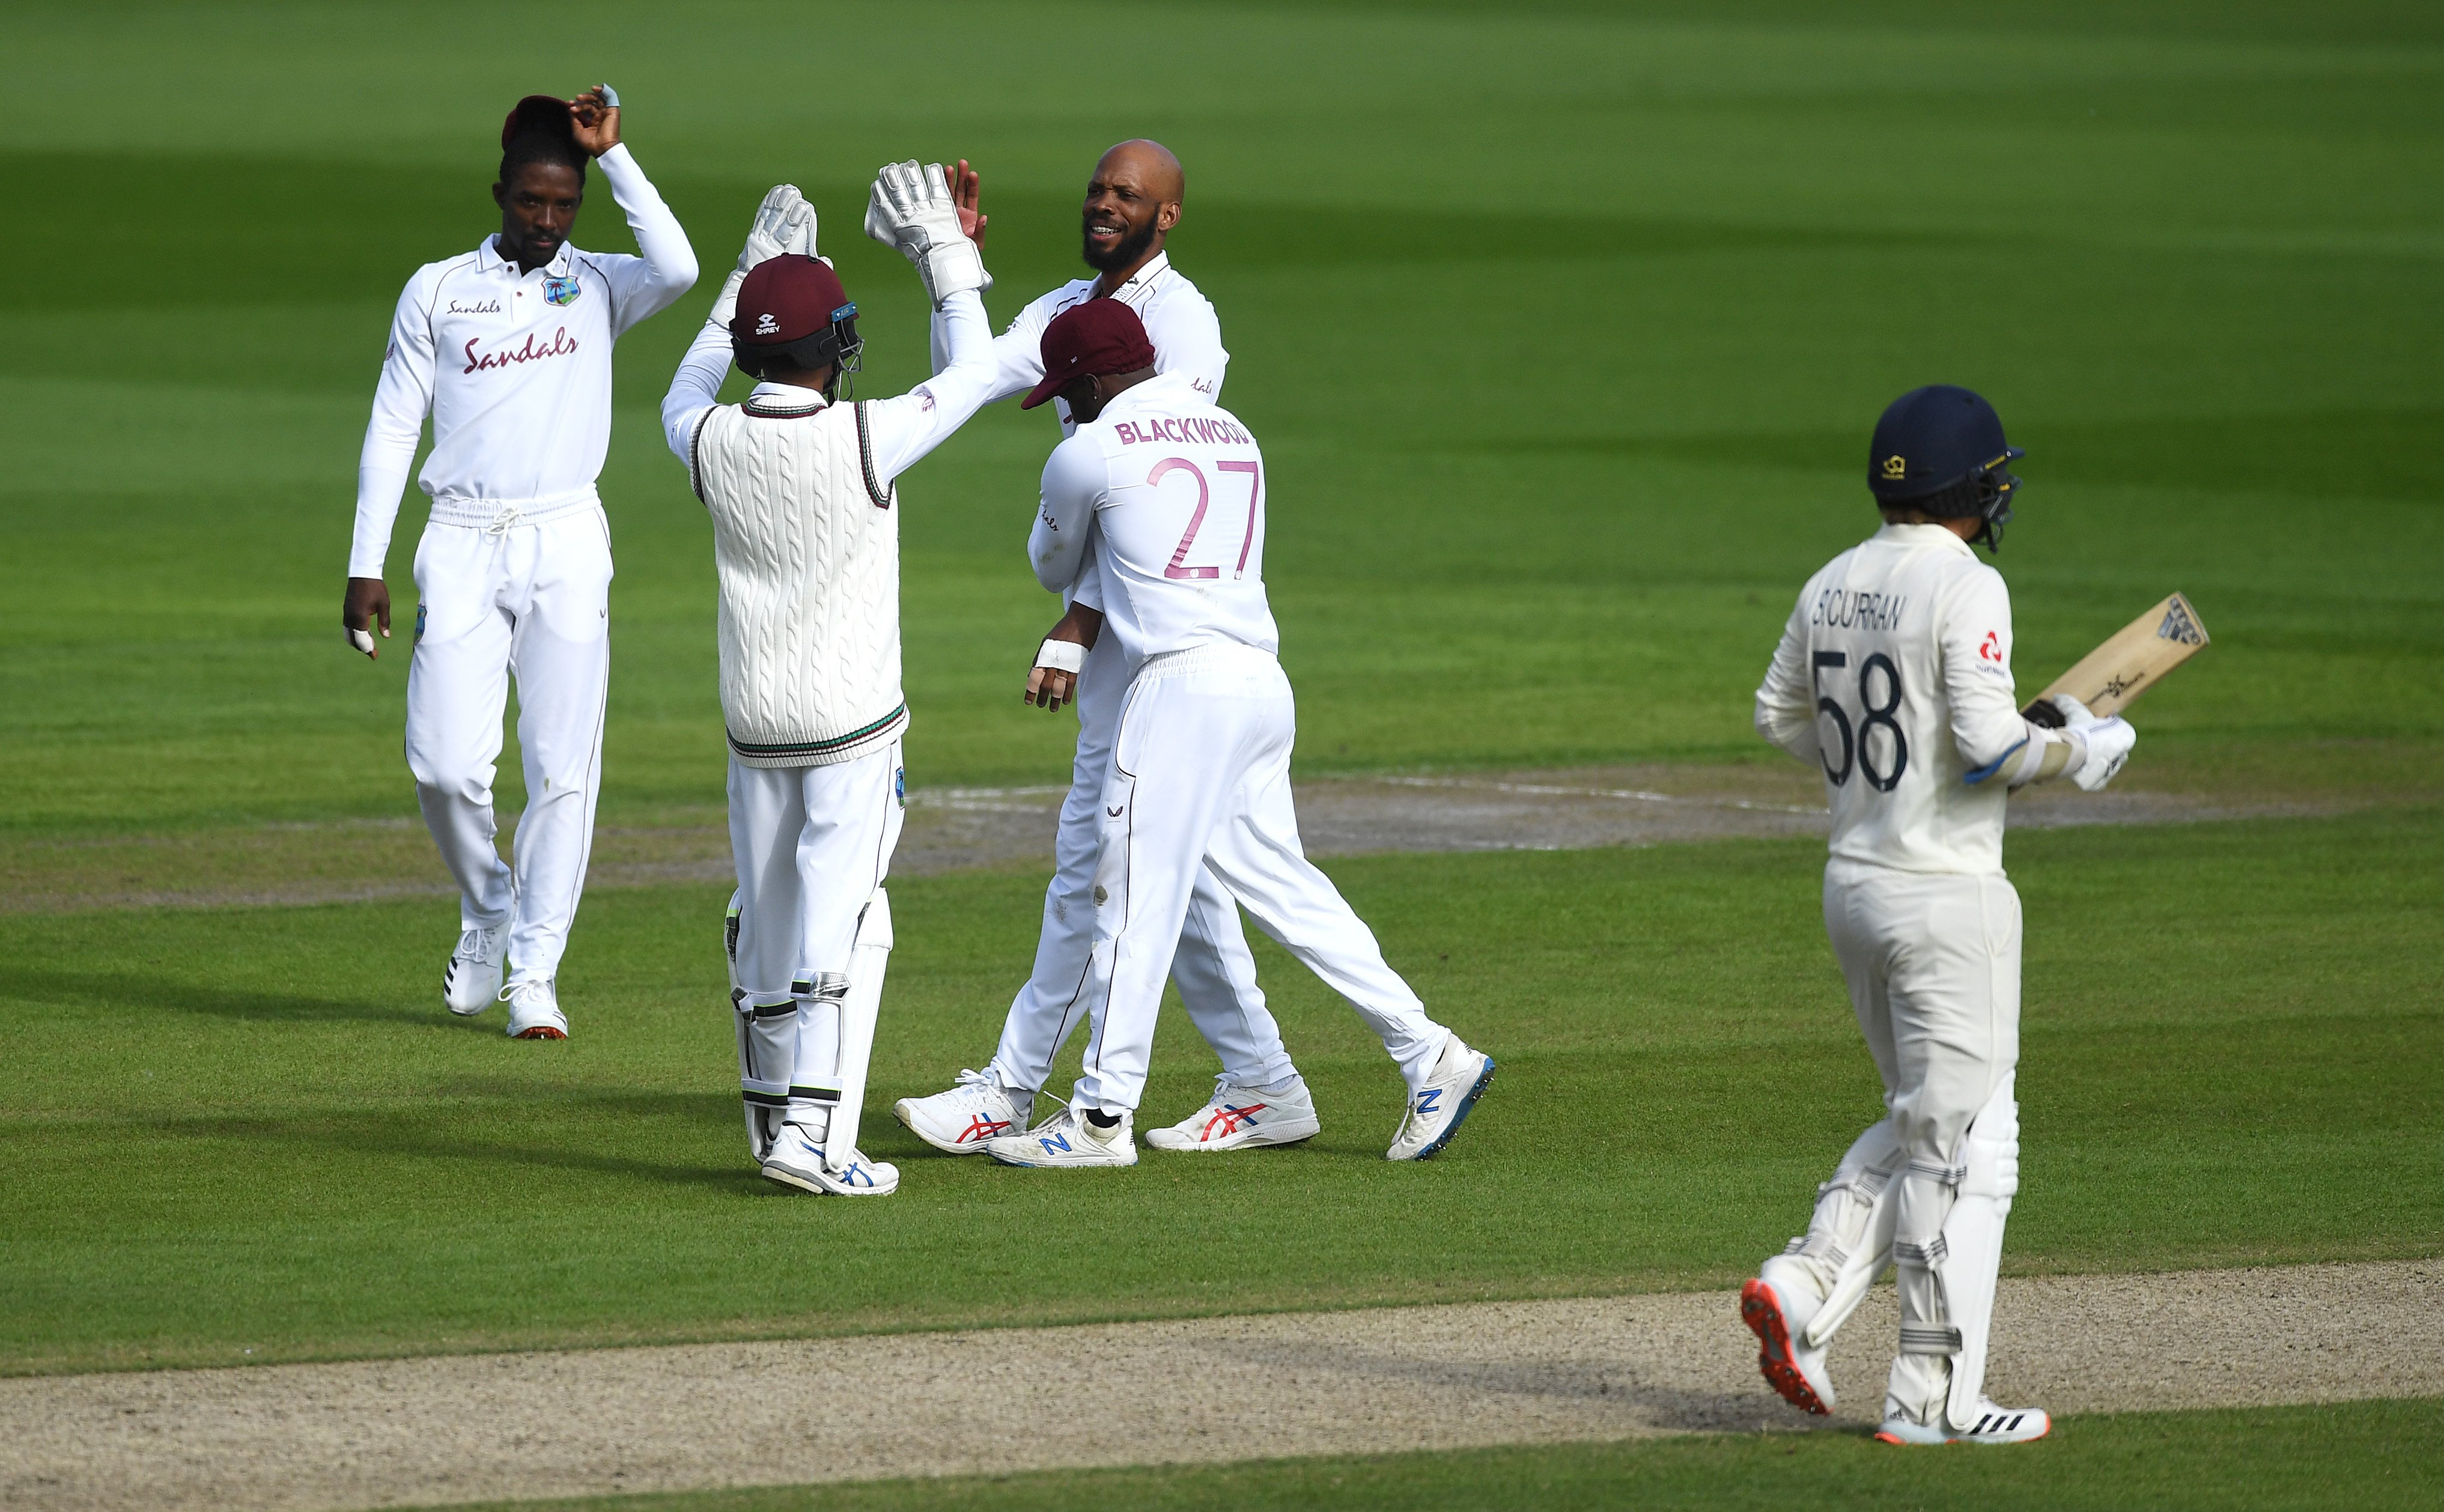 Roston Chase  v England - Test 2 Day 2 - 5 wickets